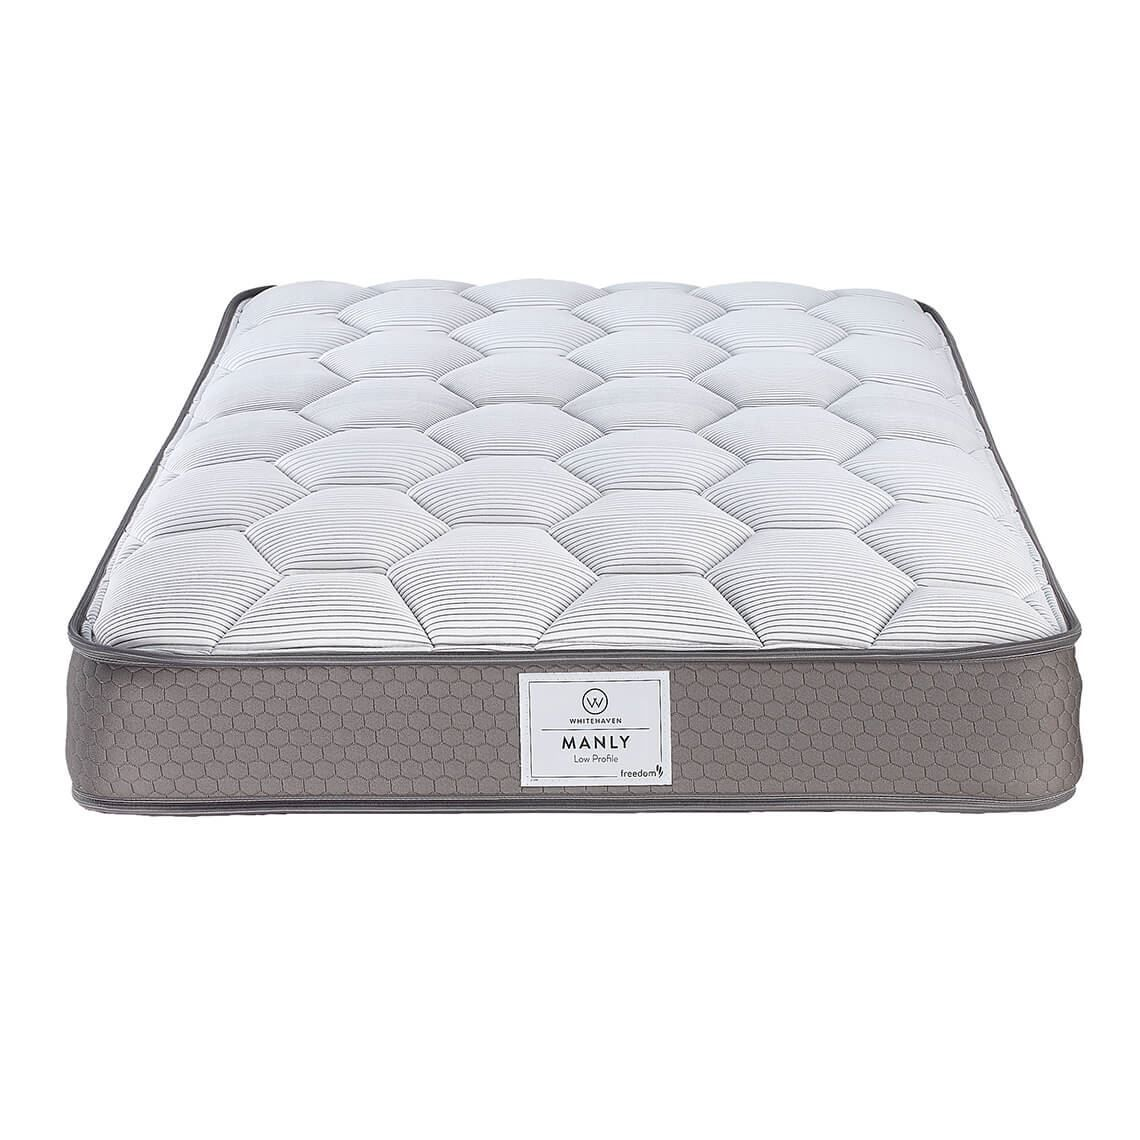 Whitehaven Manly Low Profile Extra Long Single Mattress